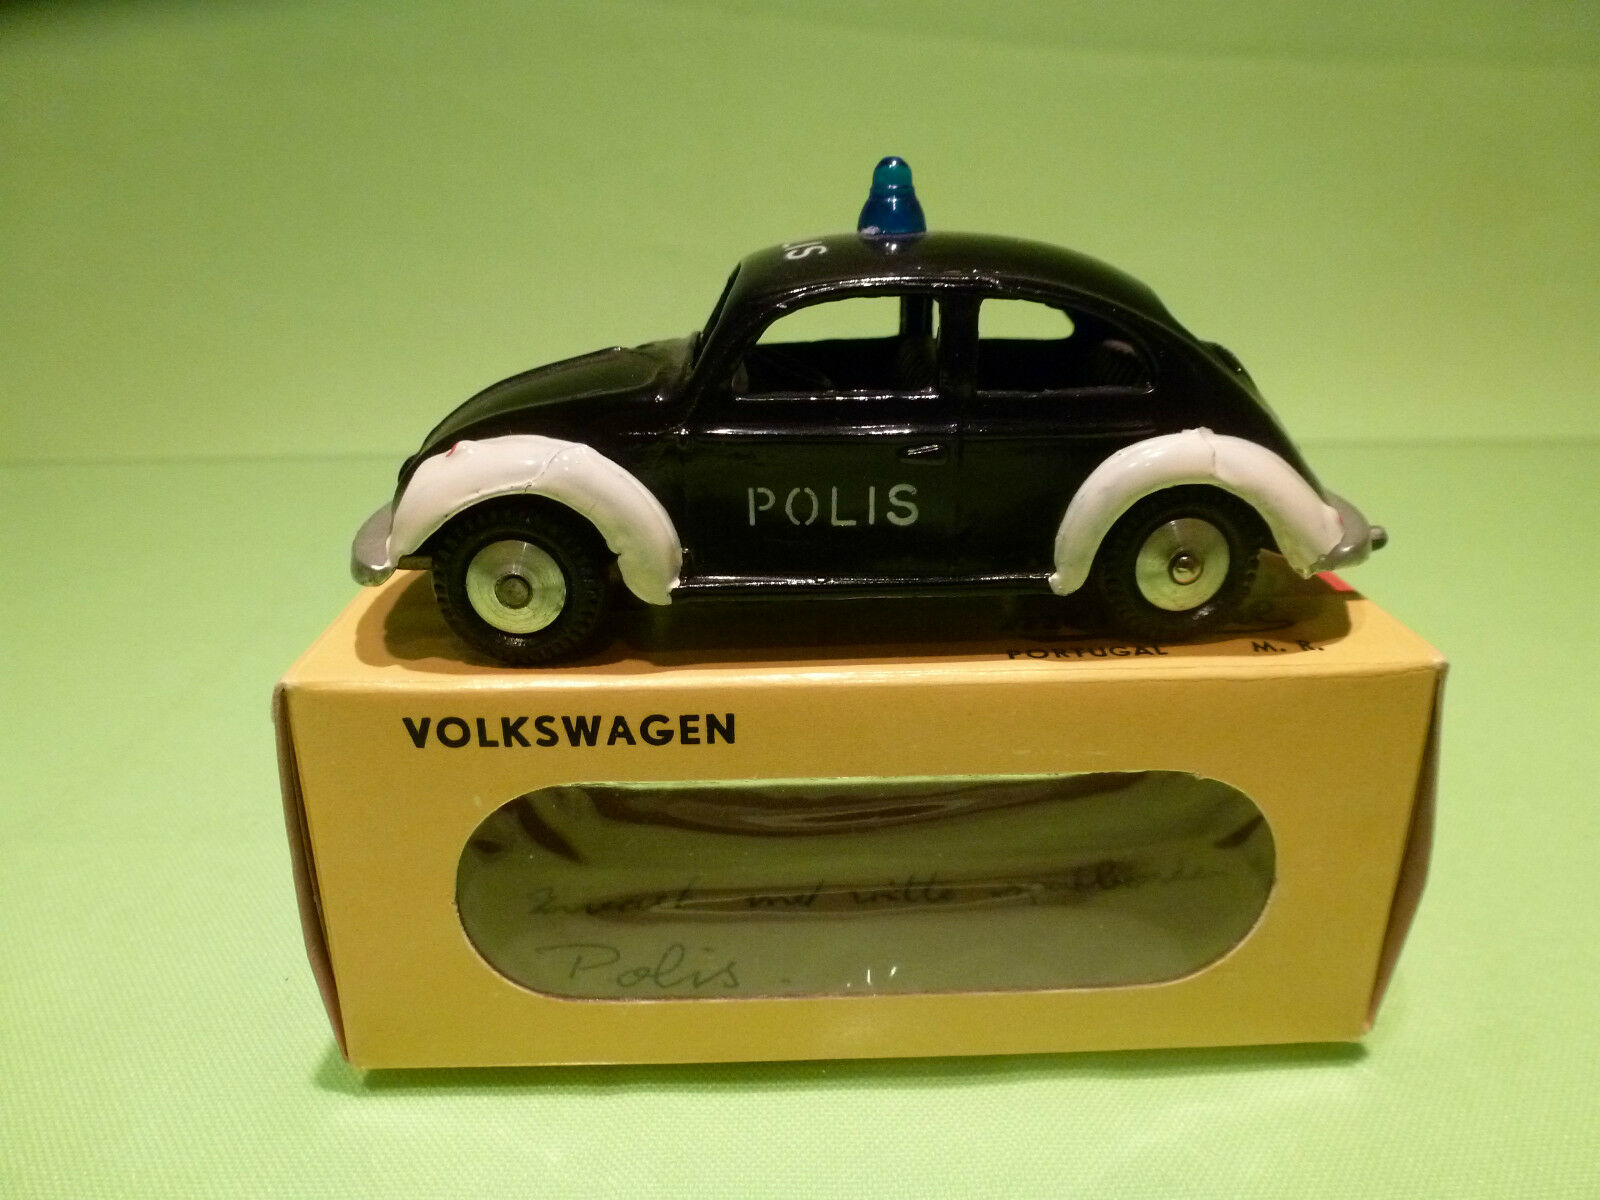 METOSUL 5 VW VOLKSWAGEN KAFER - POLIS - POLICE - RARE SELTEN - GOOD COND. IN BOX